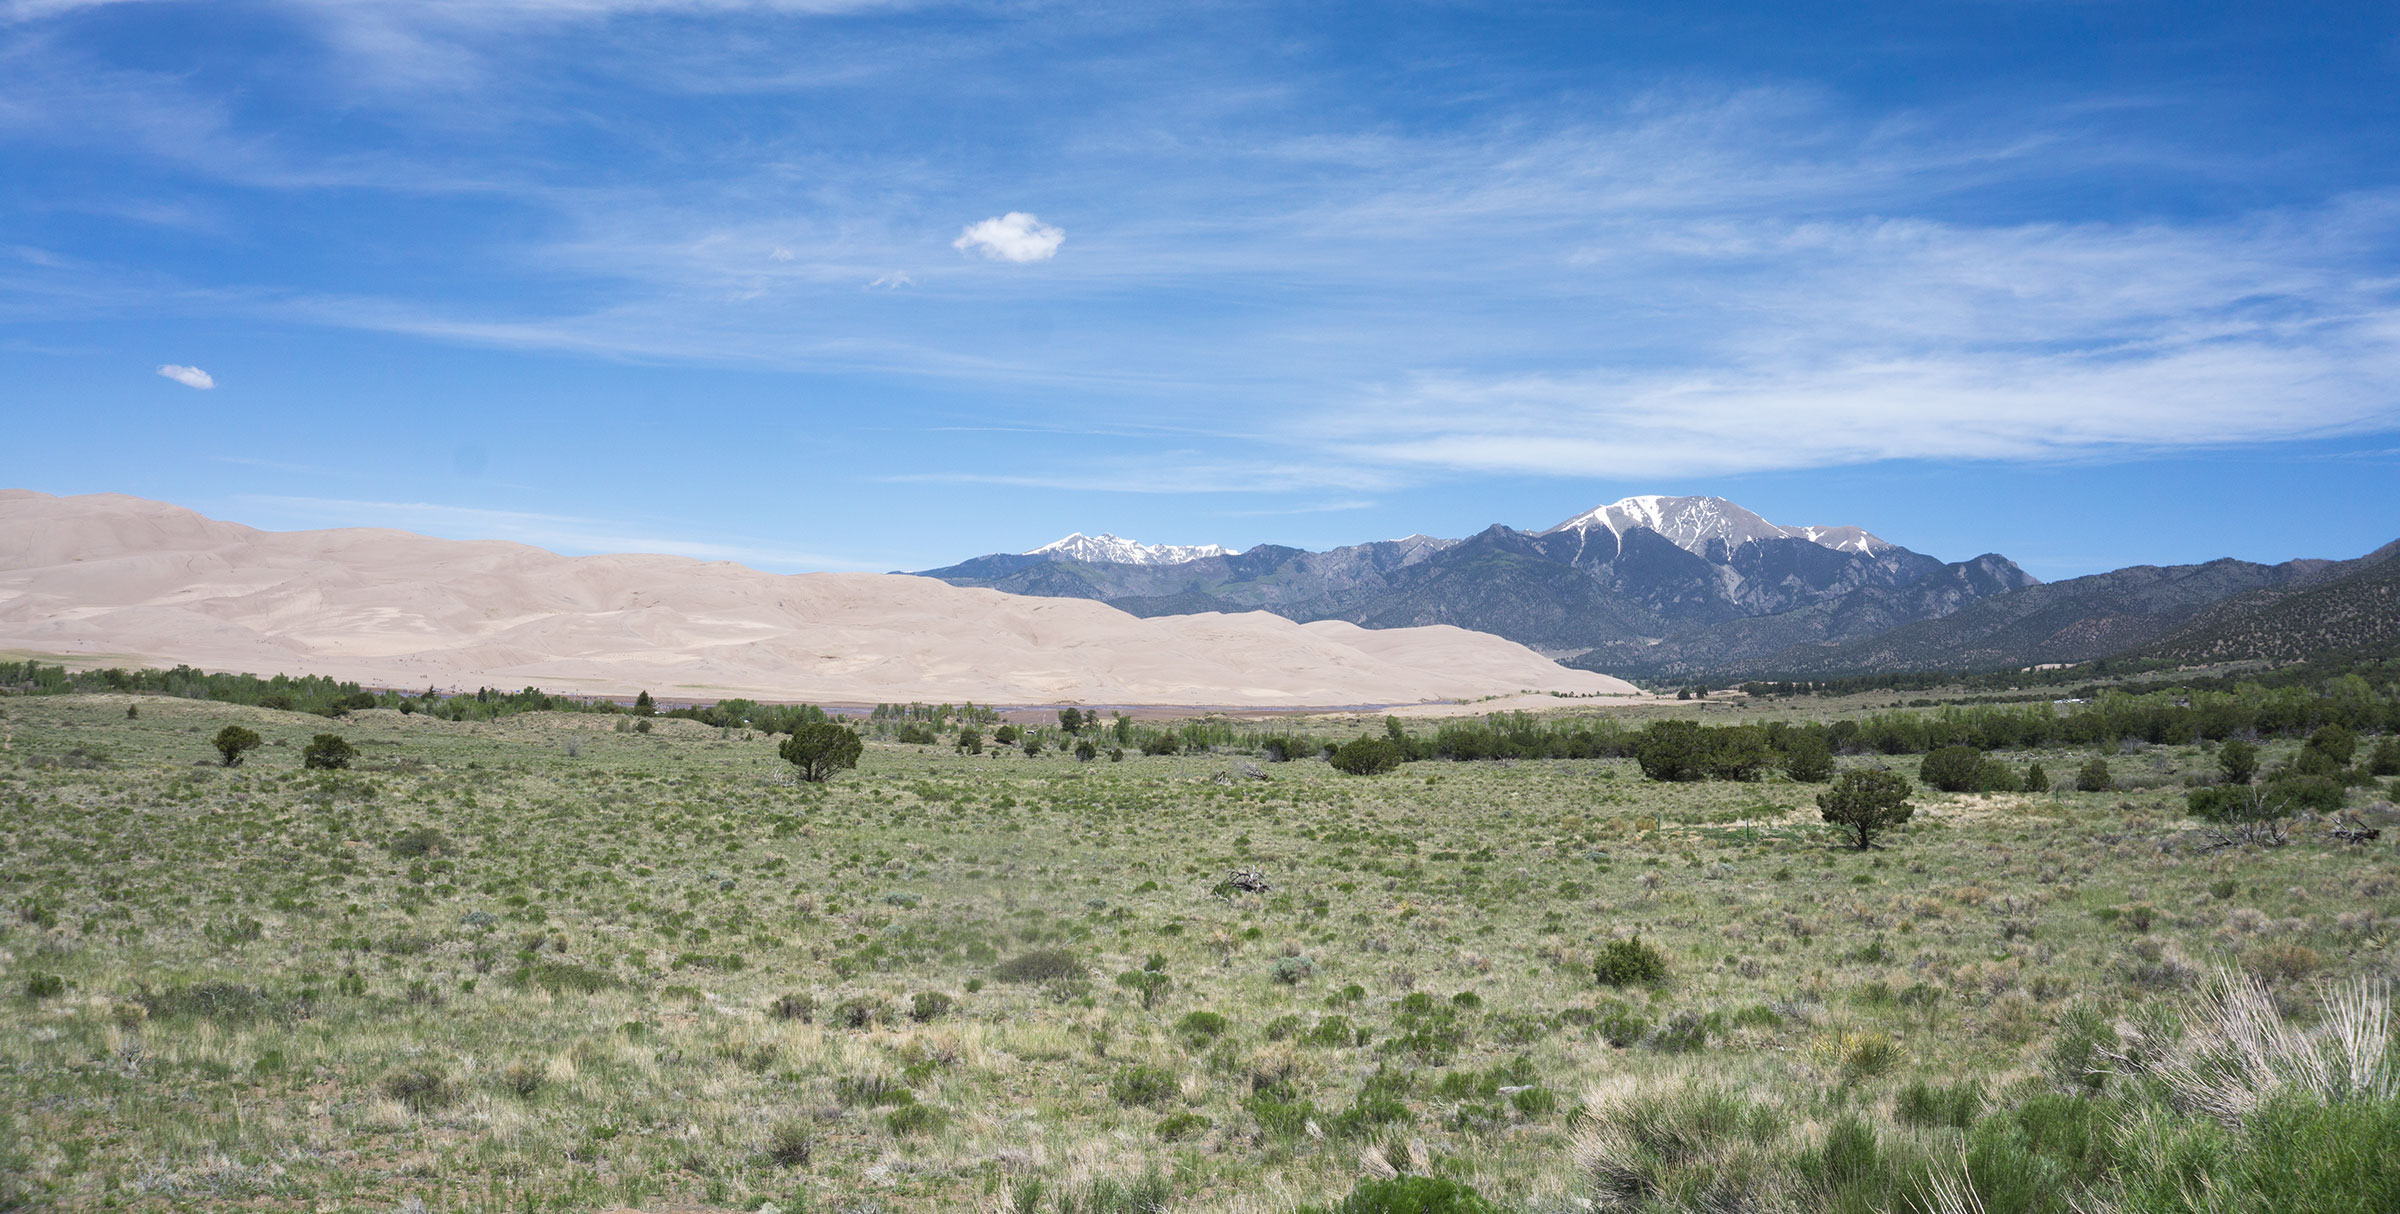 sand dunes in front of snow capped mountain peak in Great Sand Dunes National Park